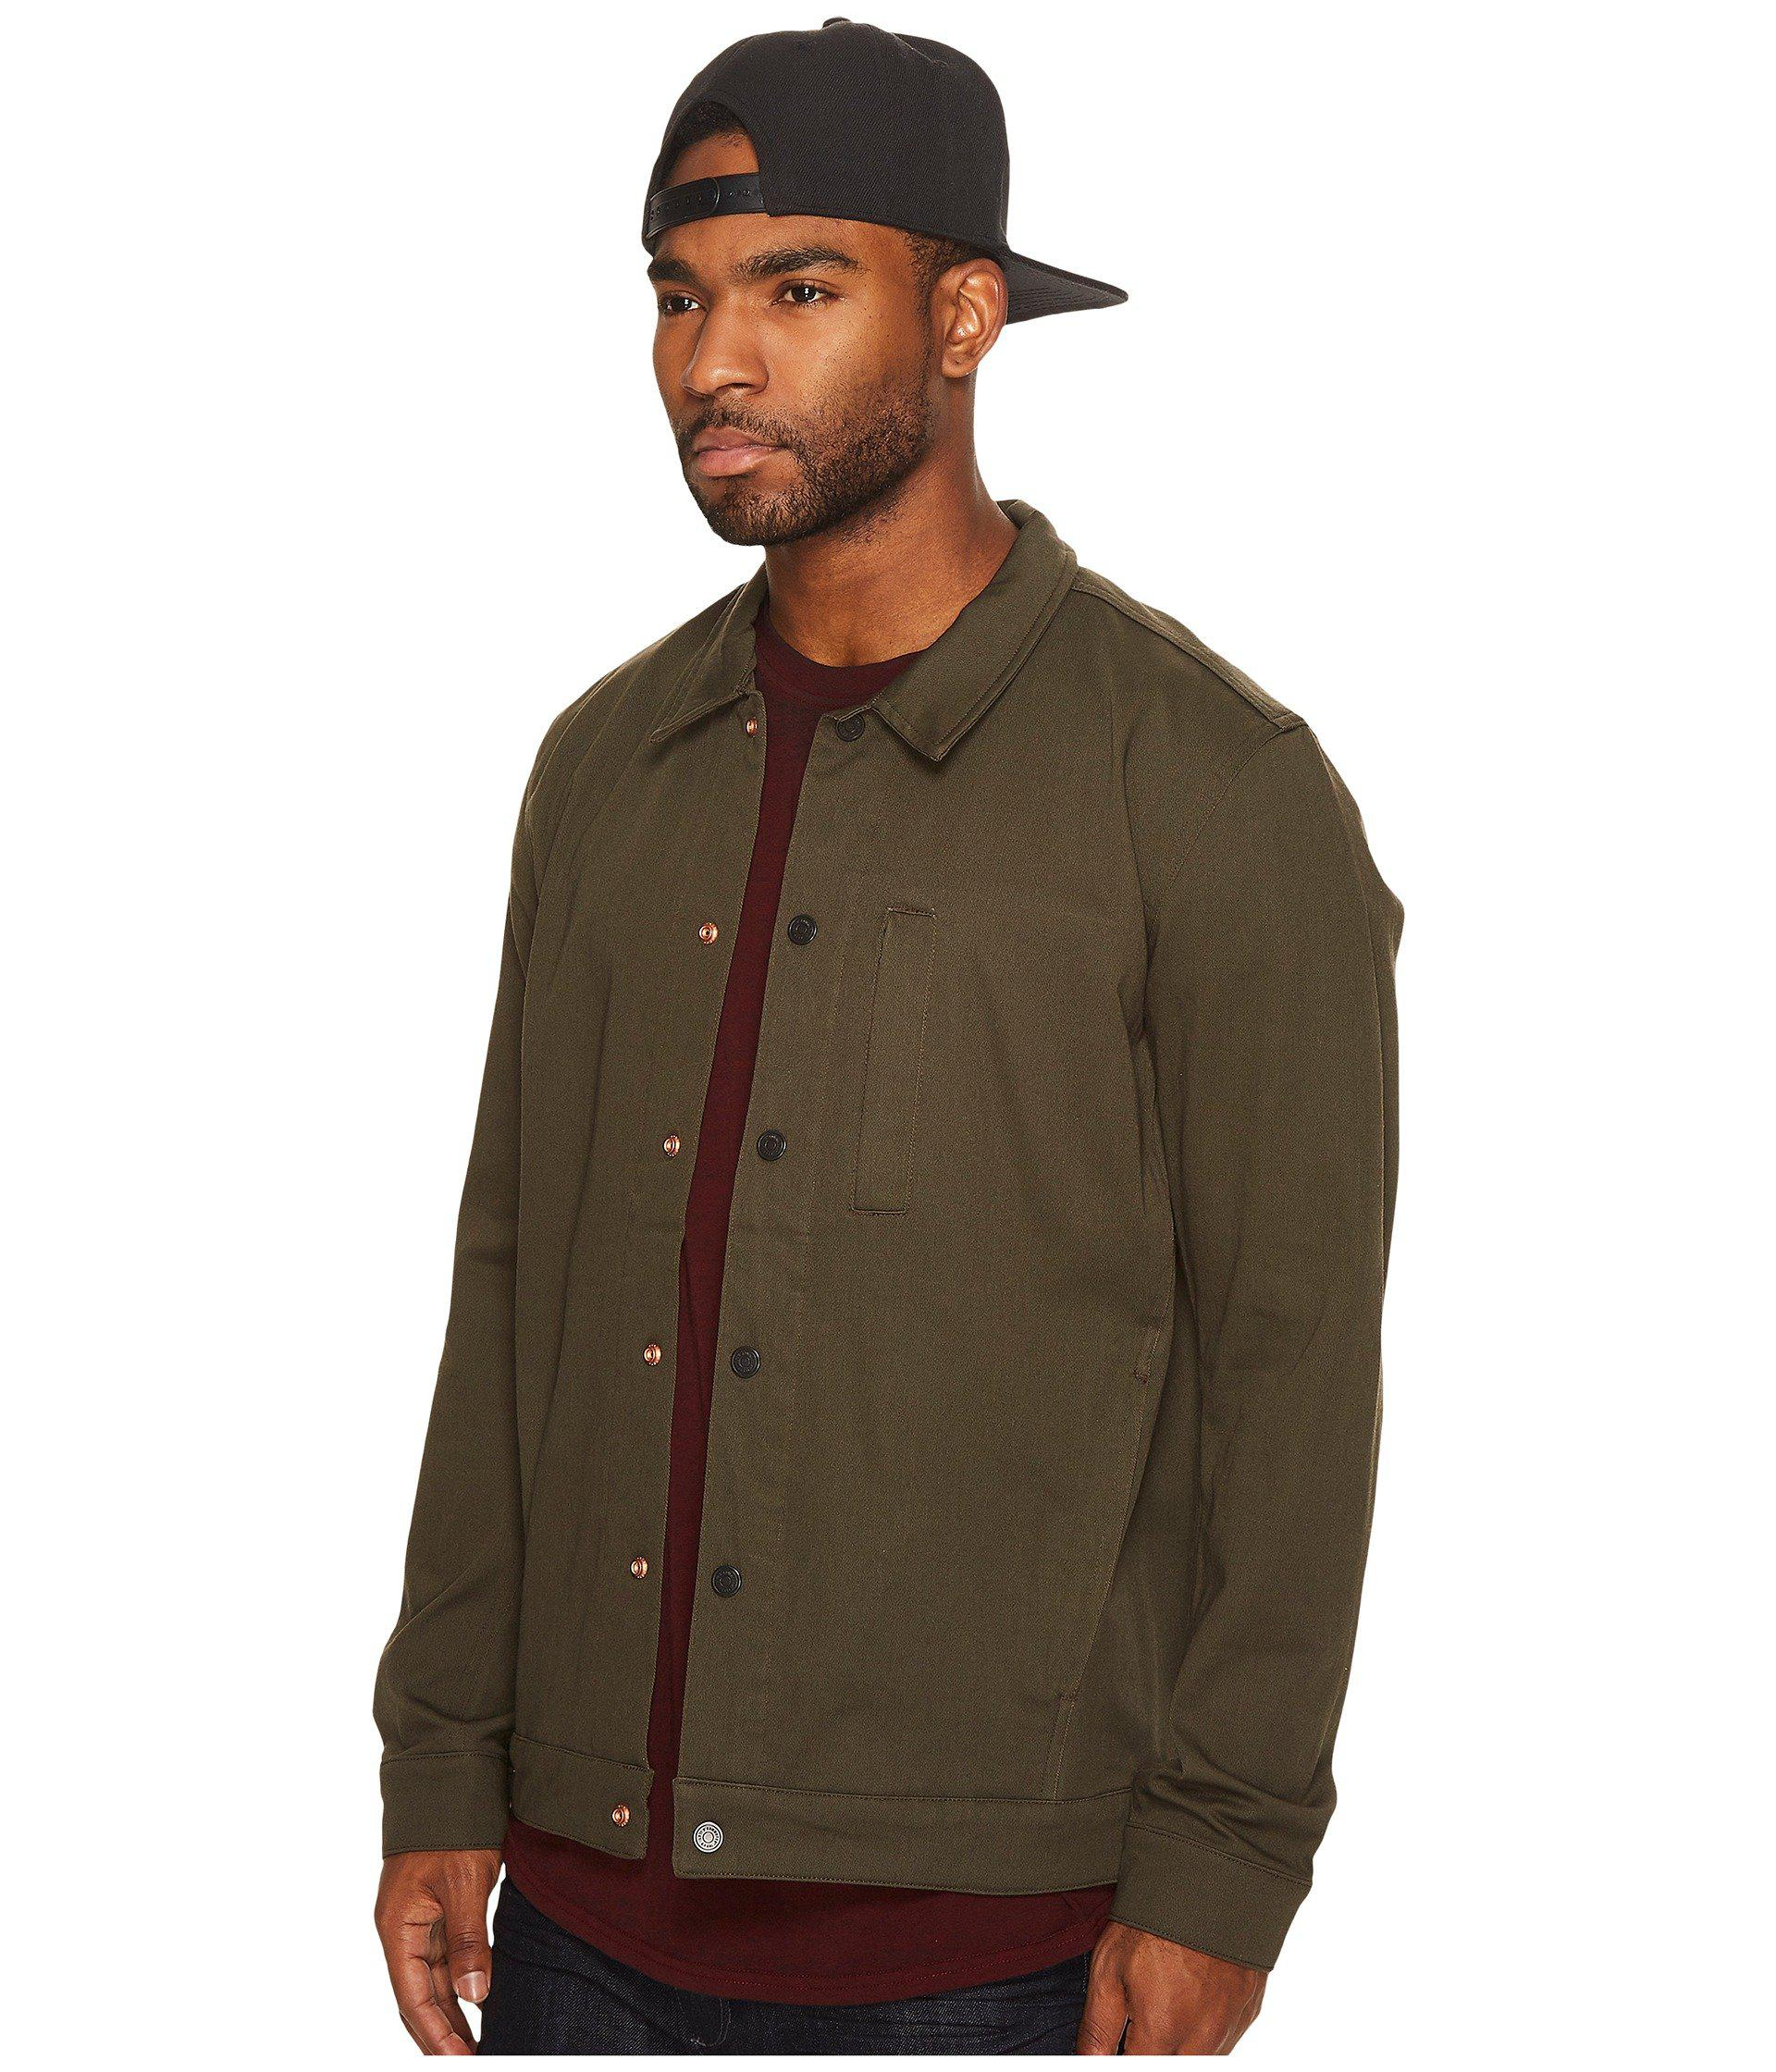 0470b884 Levi's Commuter Pro Coaches Jacket in Green for Men - Lyst